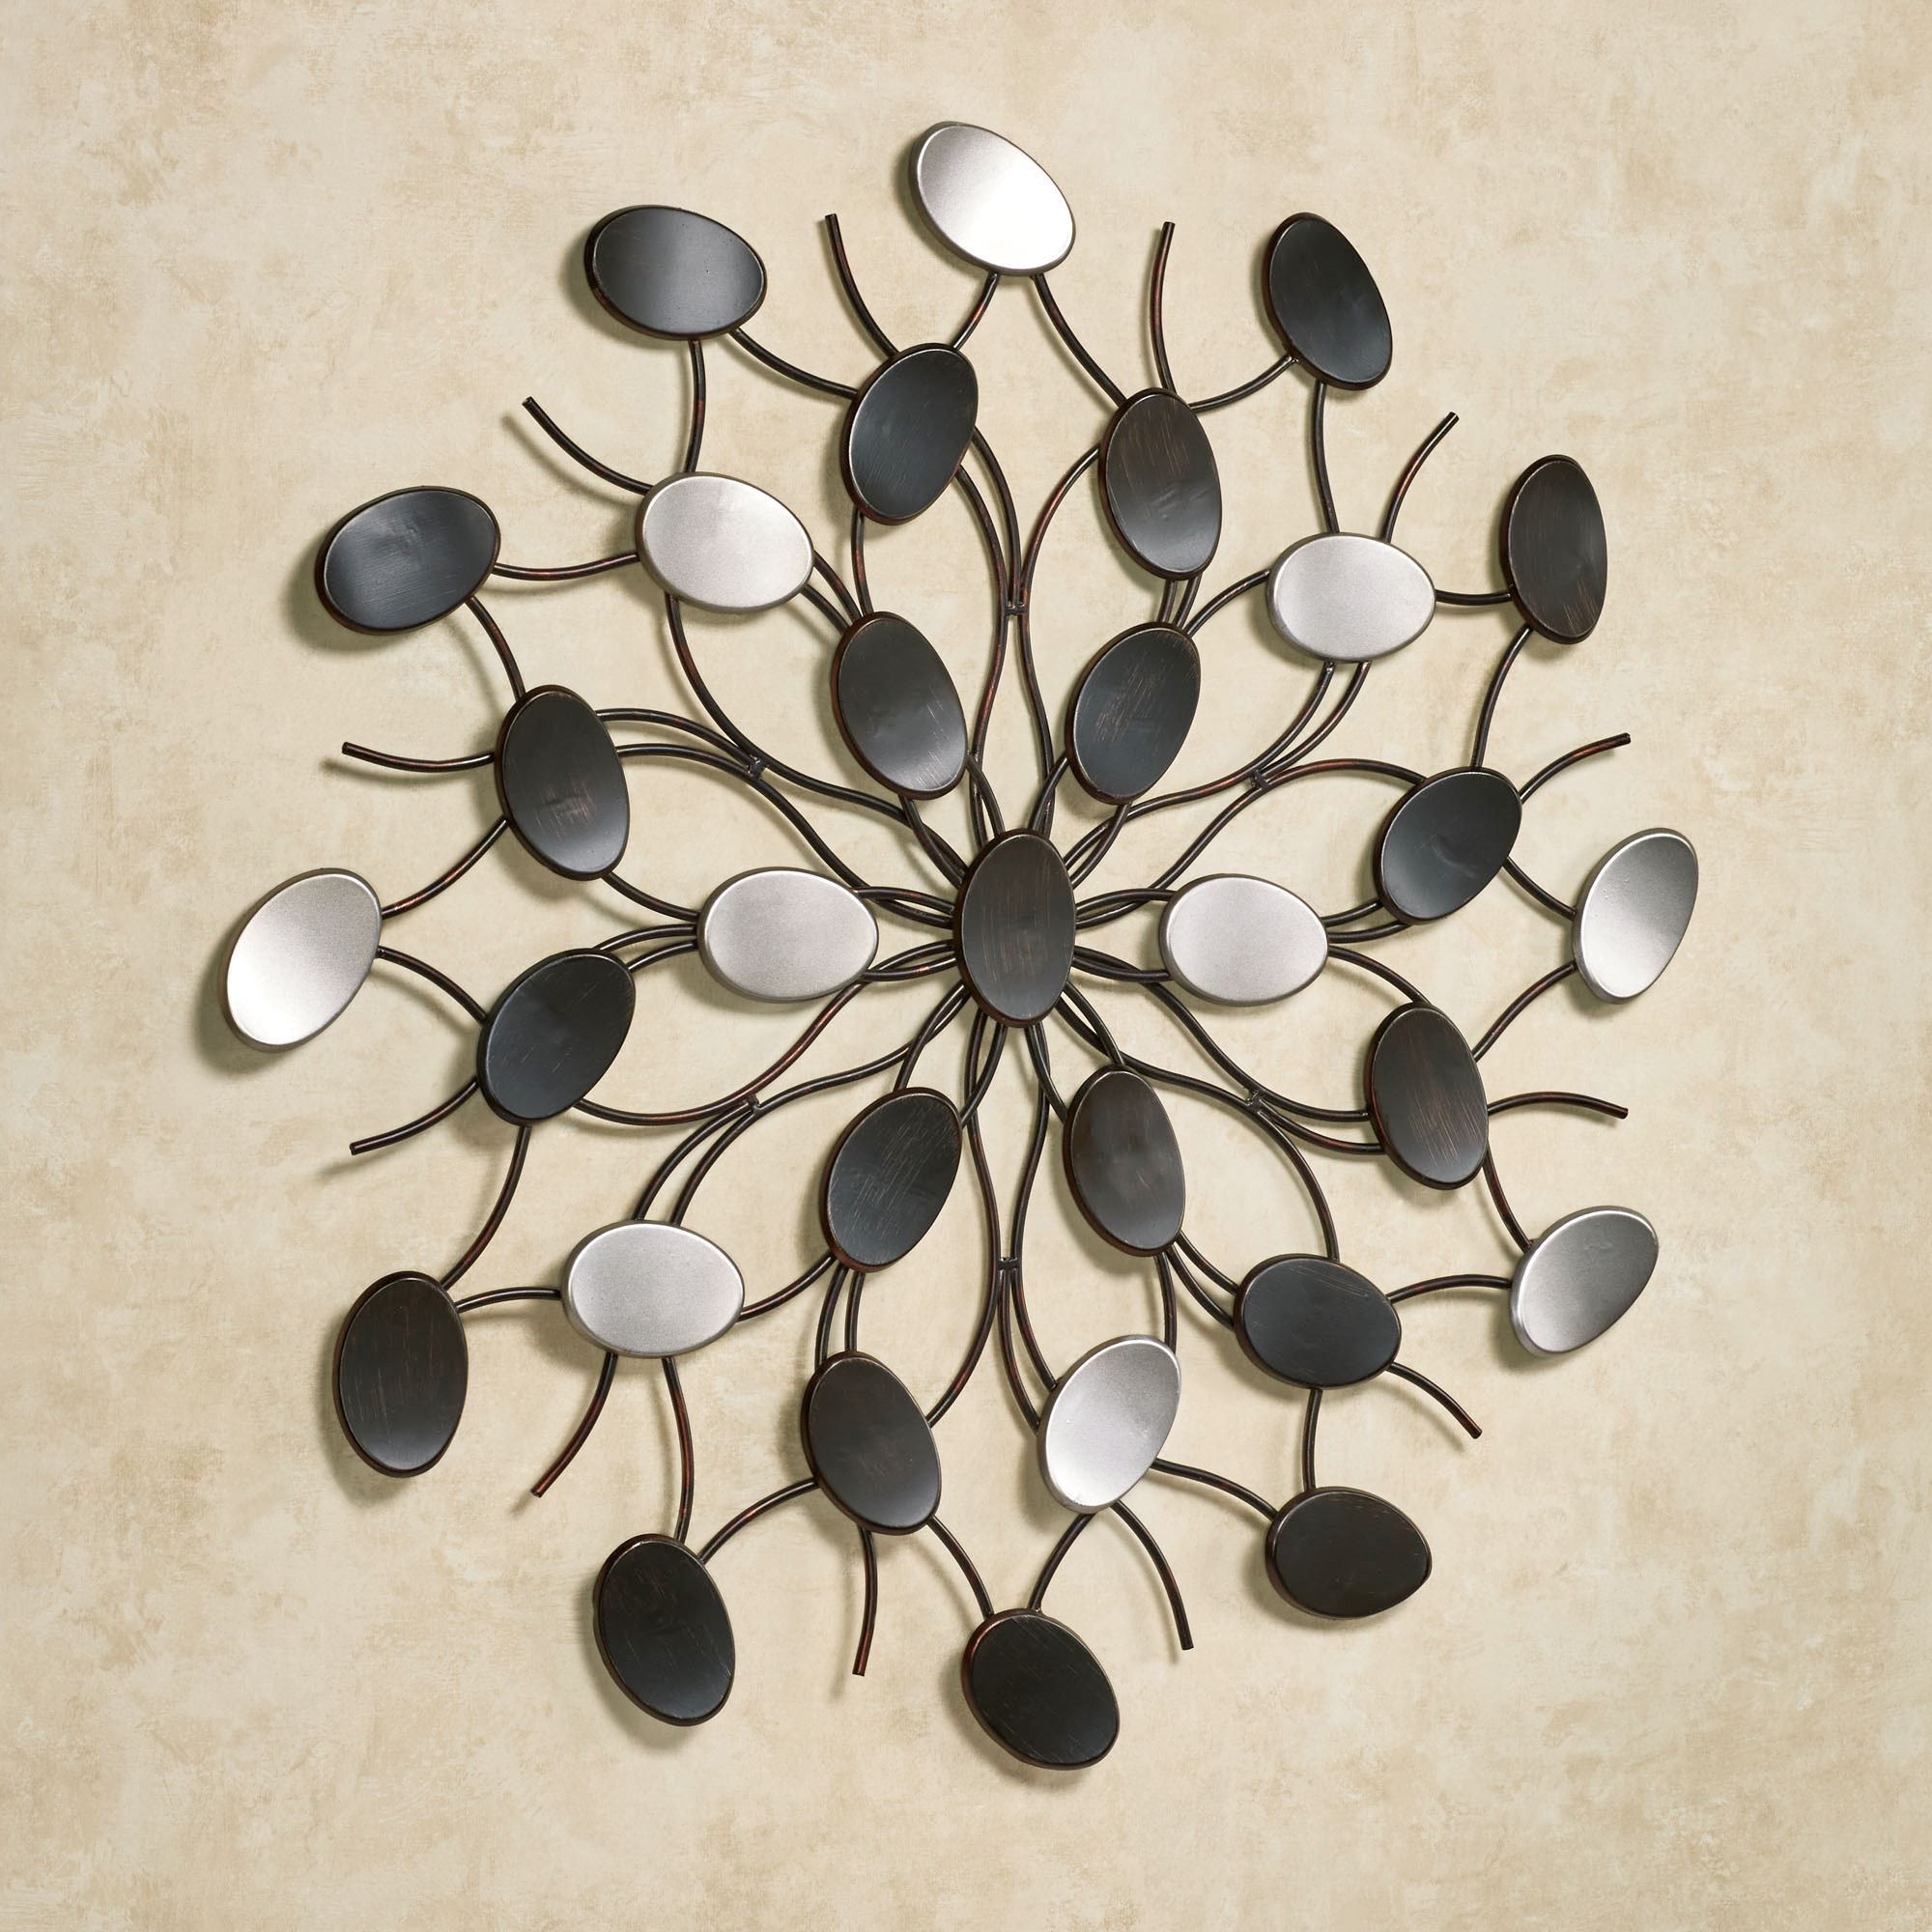 Radiant Petals Abstract Metal Wall Art